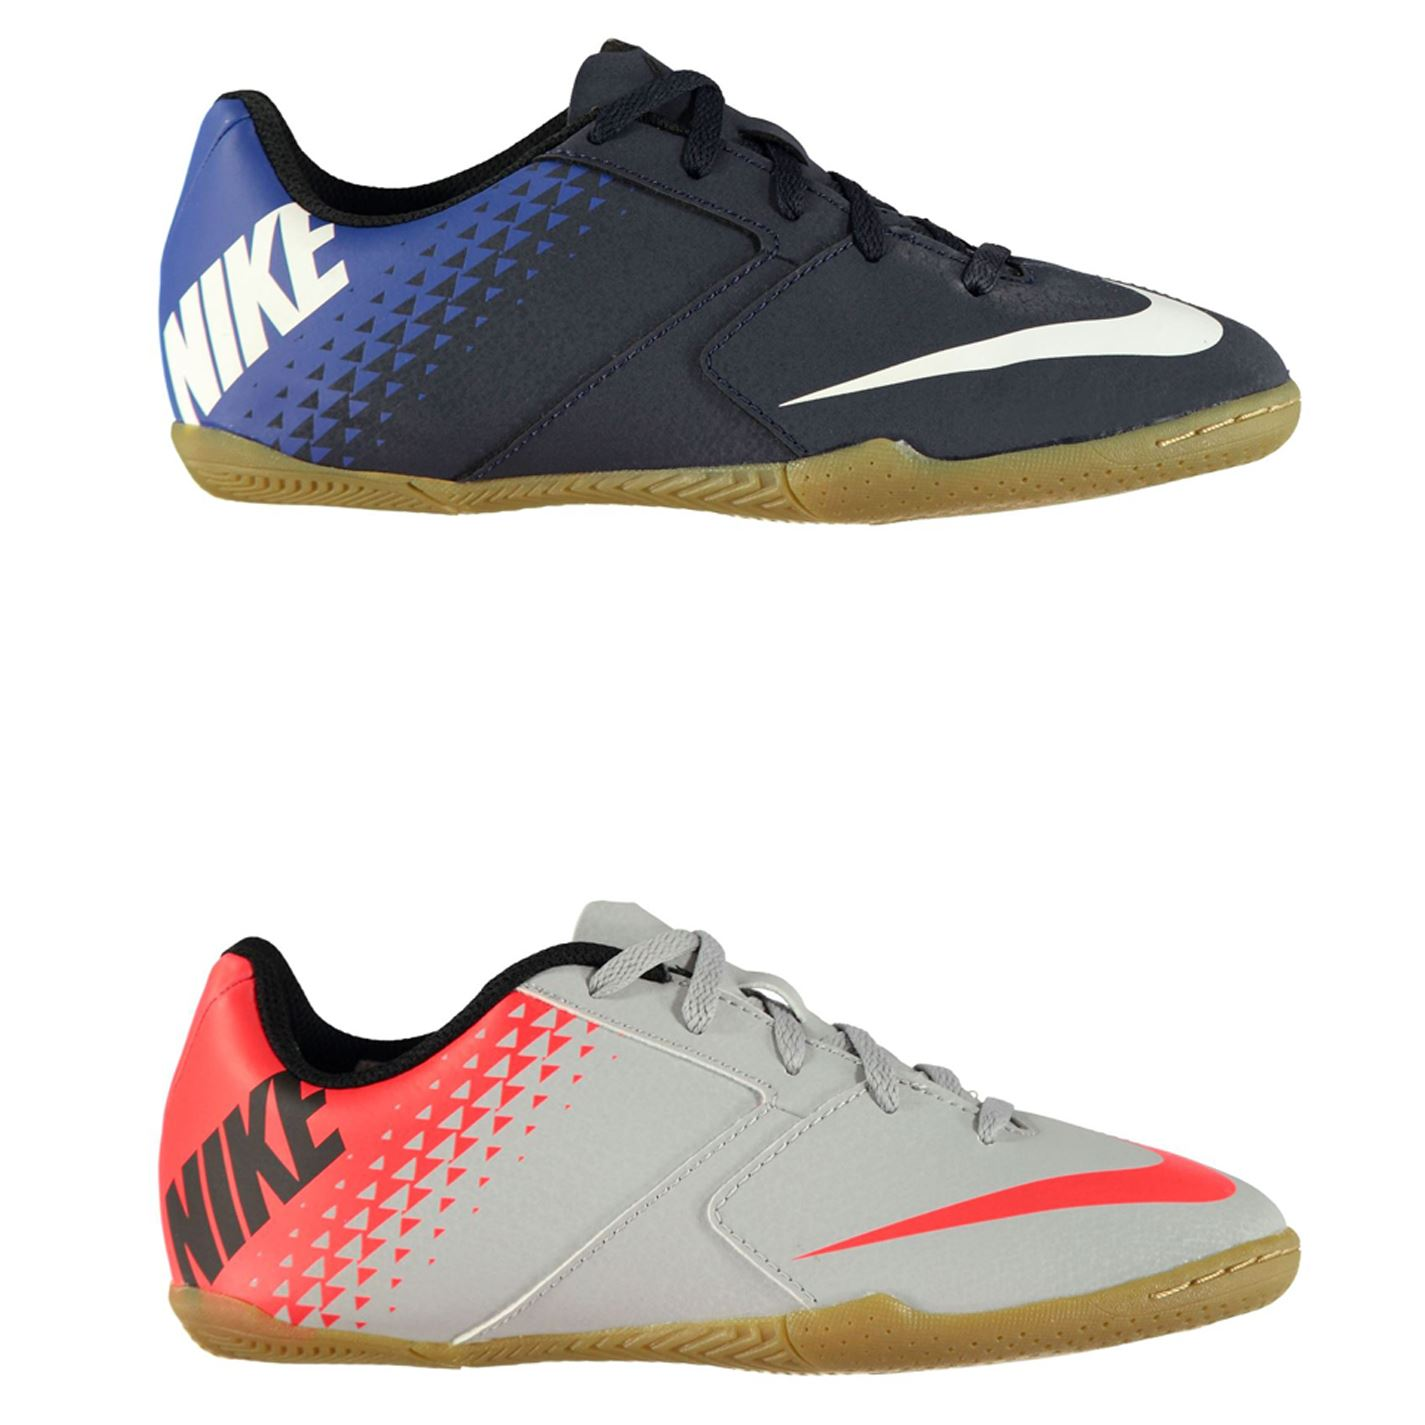 ... Nike Bomba X Indoor Court Football Trainers Juniors Soccer Shoes  Sneakers ... 6908f5cd49c